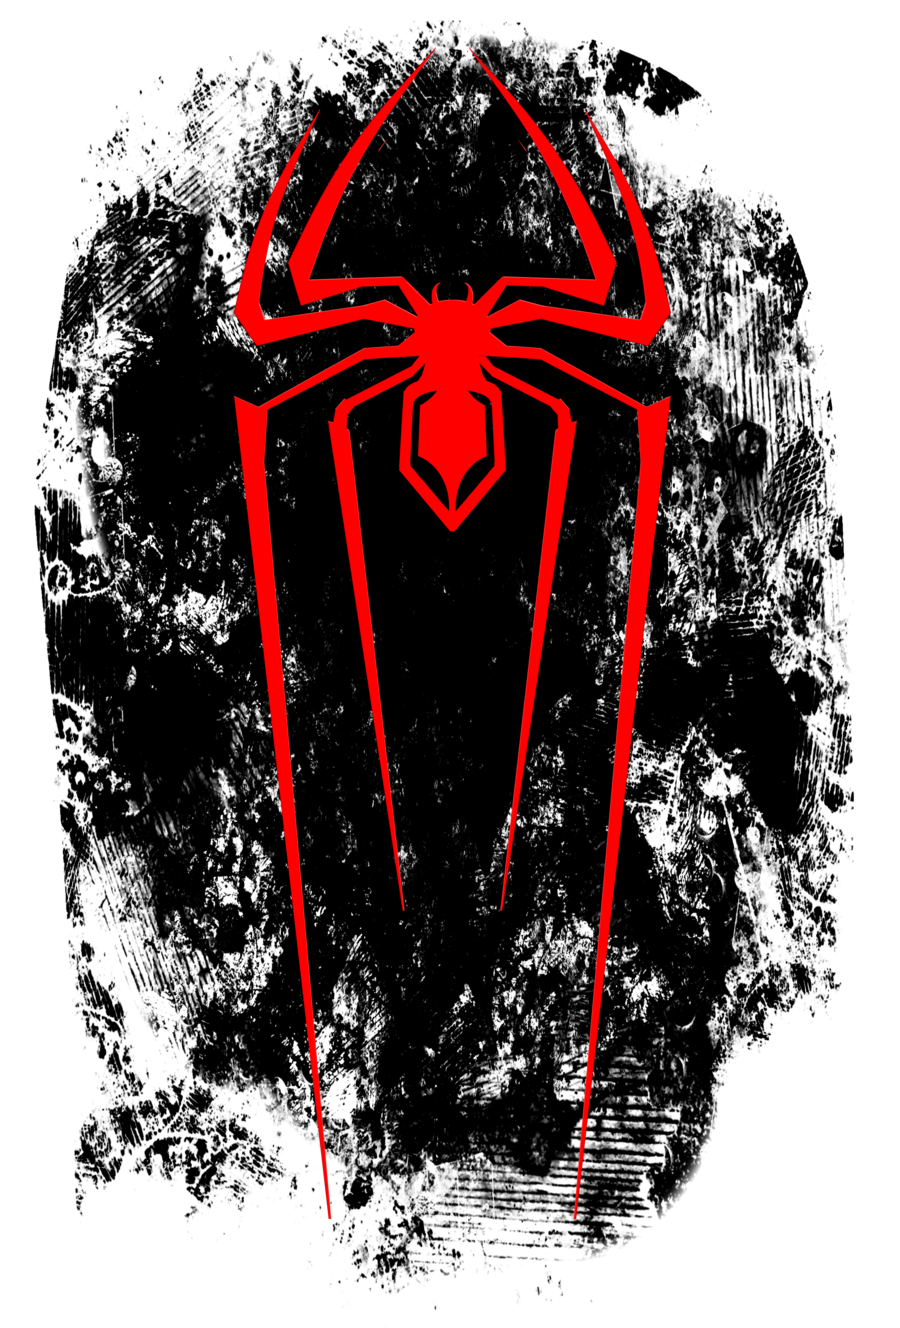 The Ultimate Spider Man Morales By Kearse On Deviantart Ultimate Spiderman Marvel Superhero Posters Spiderman Pictures